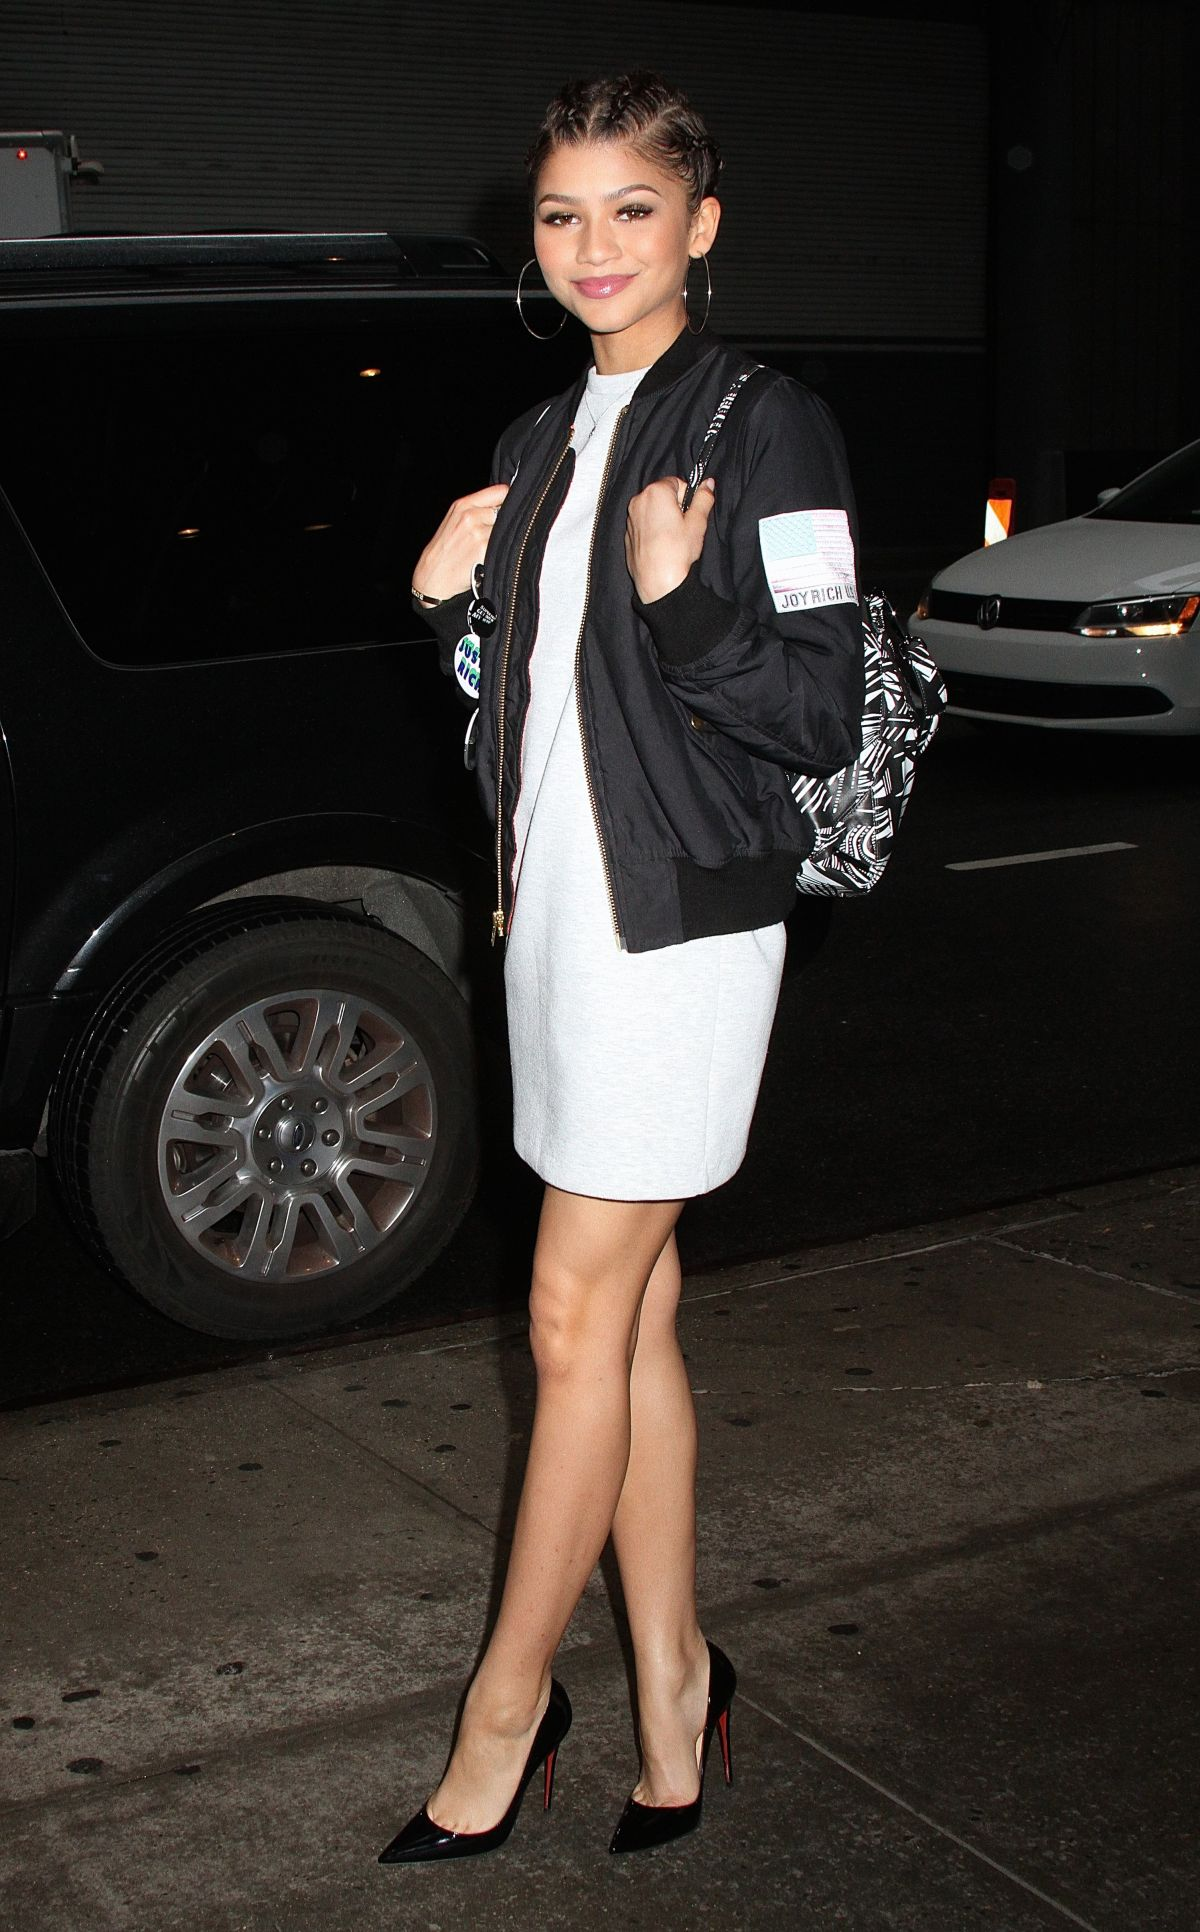 ZENDAYA COLEMAN Leaves Her Hotel in New York 04/21/2015